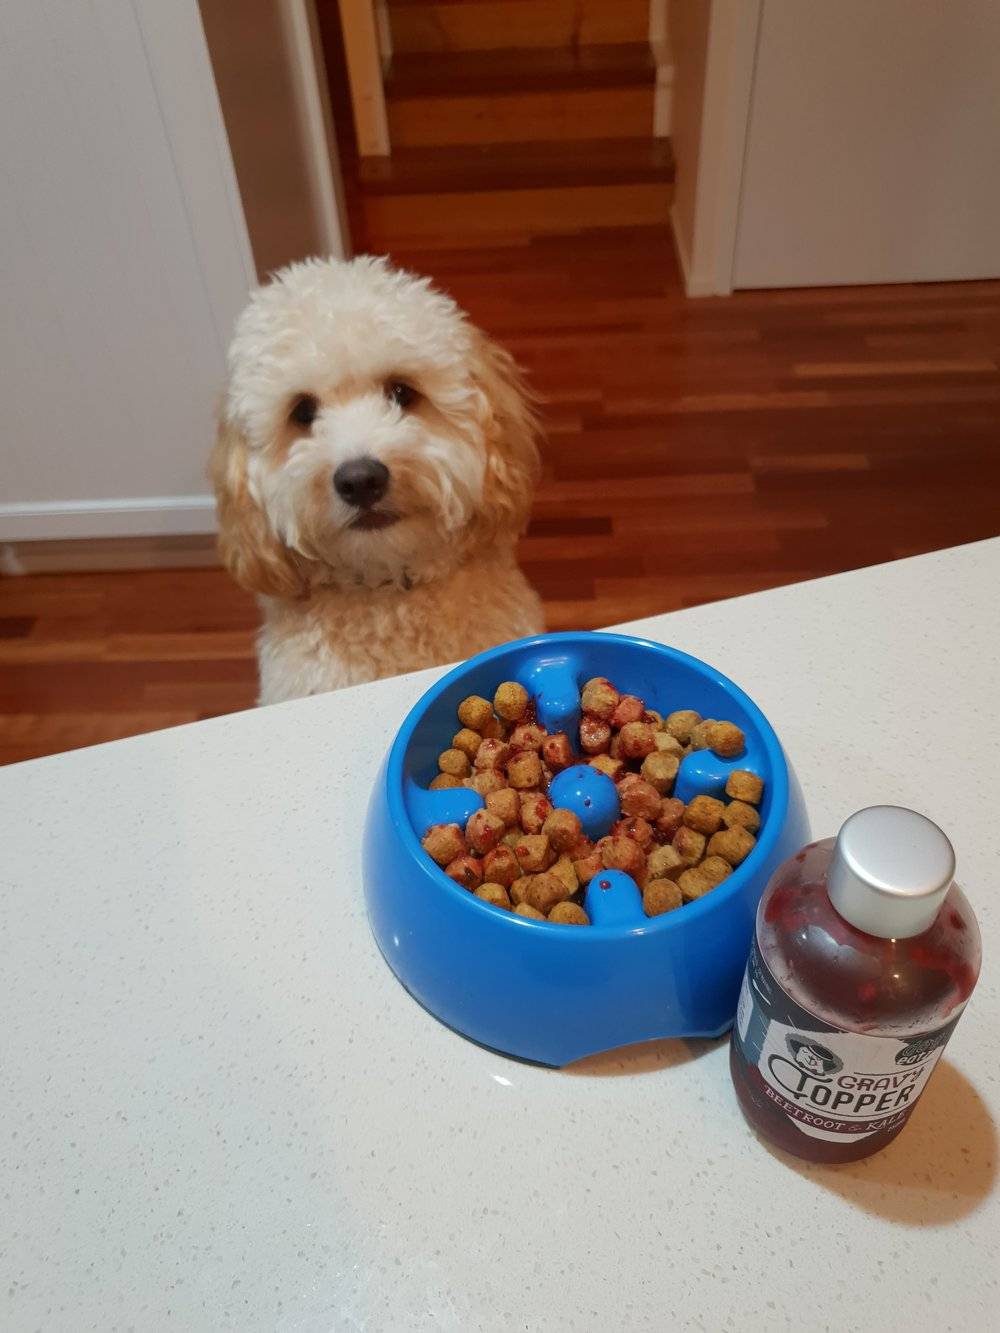 """- """"Our dog's a fussy eater, but one tablespoon of Dogeatz Toppers on her kibble and she laps it up. It's amazing to think that's it's good for her too!""""-Tim"""